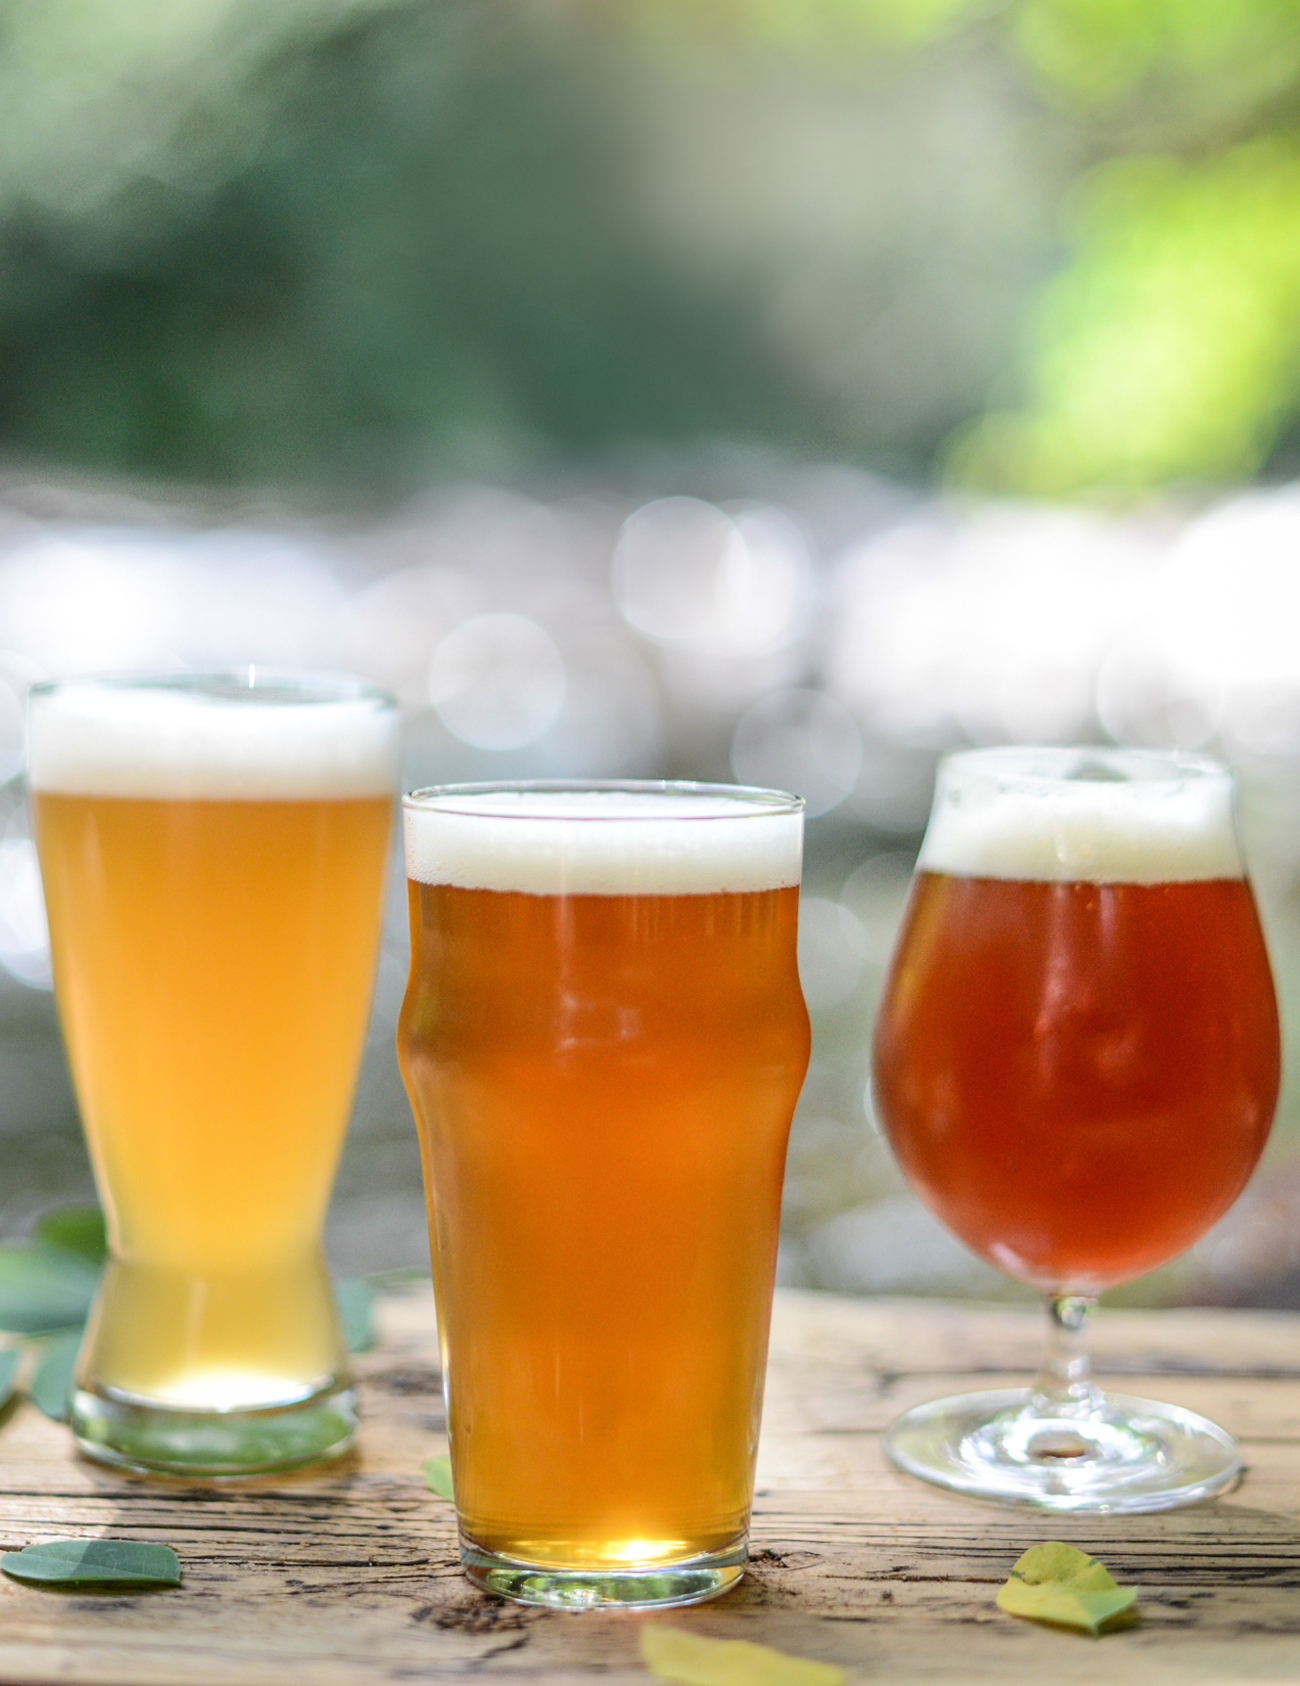 CraftBeer.com releases fall seasonals (Photo: Business Wire)